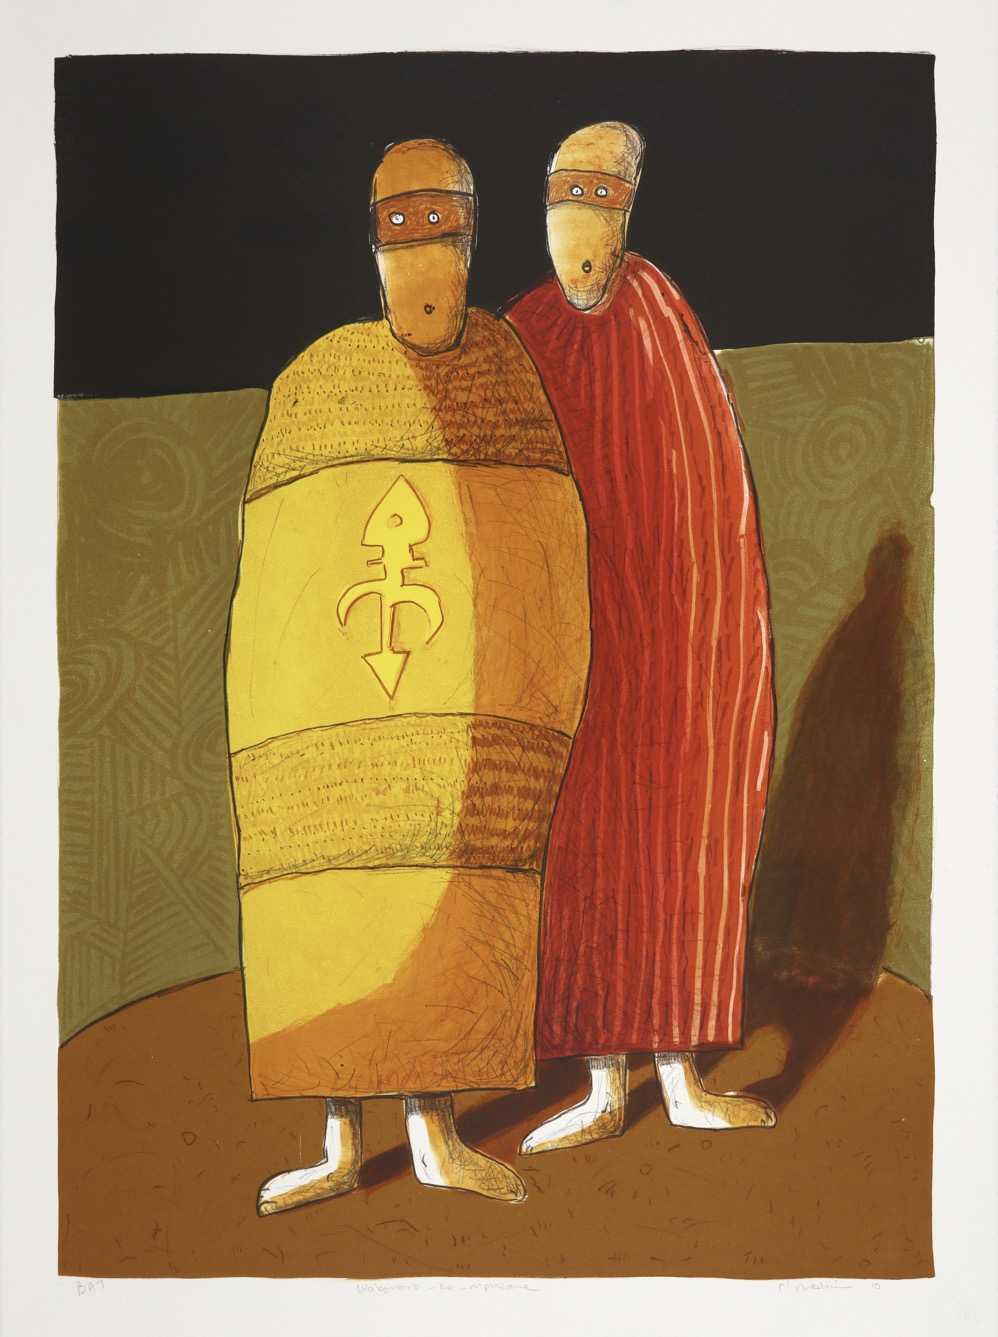 Two cloaked figures with a single shadow standing next to each other in a patterned enclosure